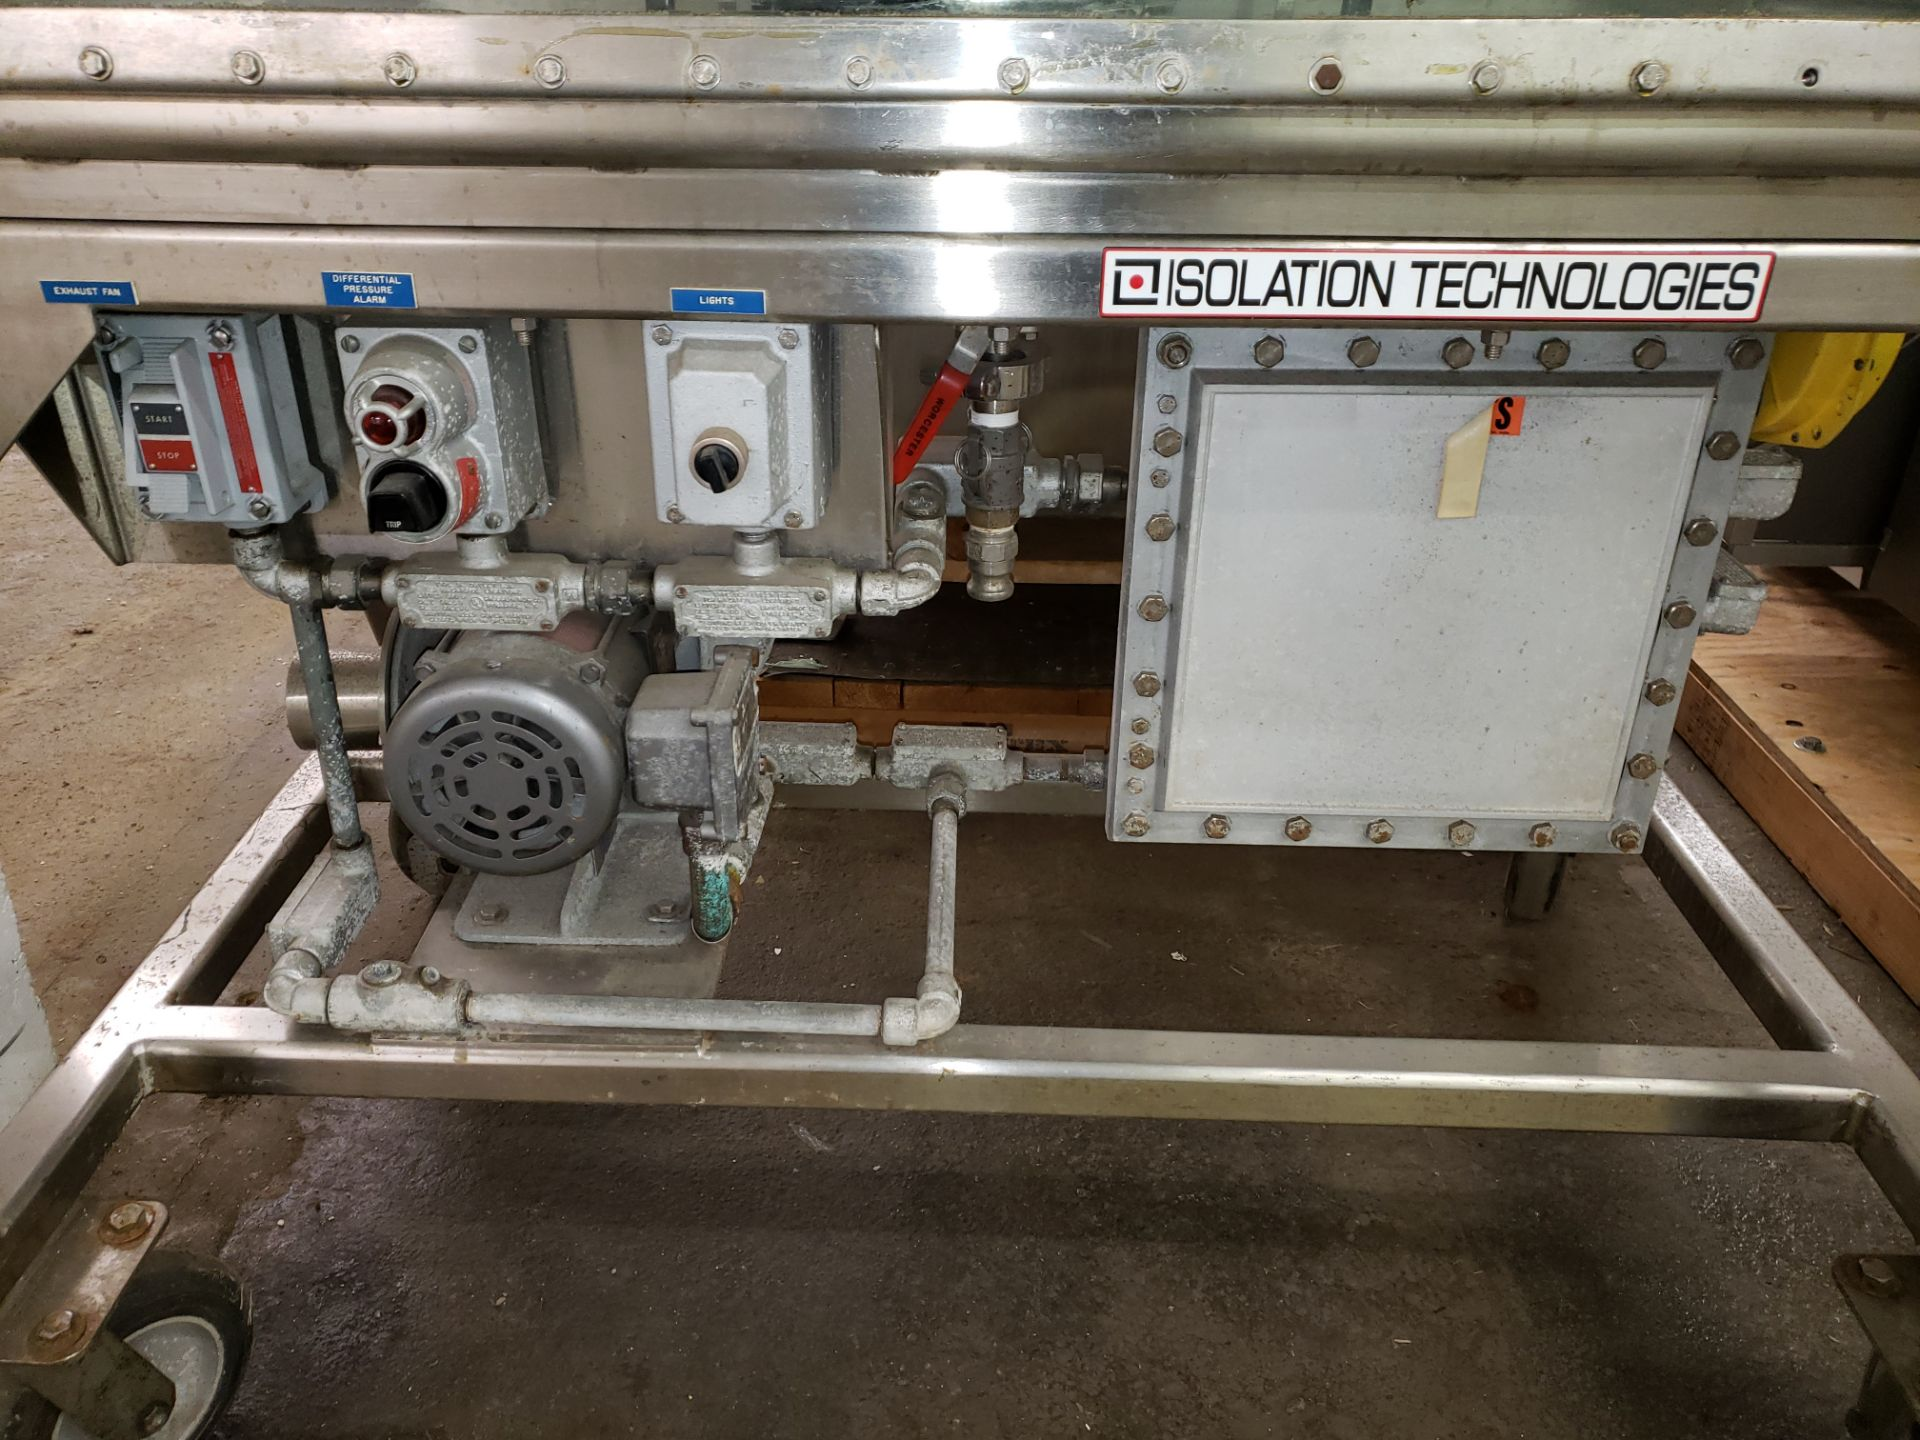 Lot 47 - Isolation Technologies glove box, model ISO System 1.5-1, stainless steel construction,